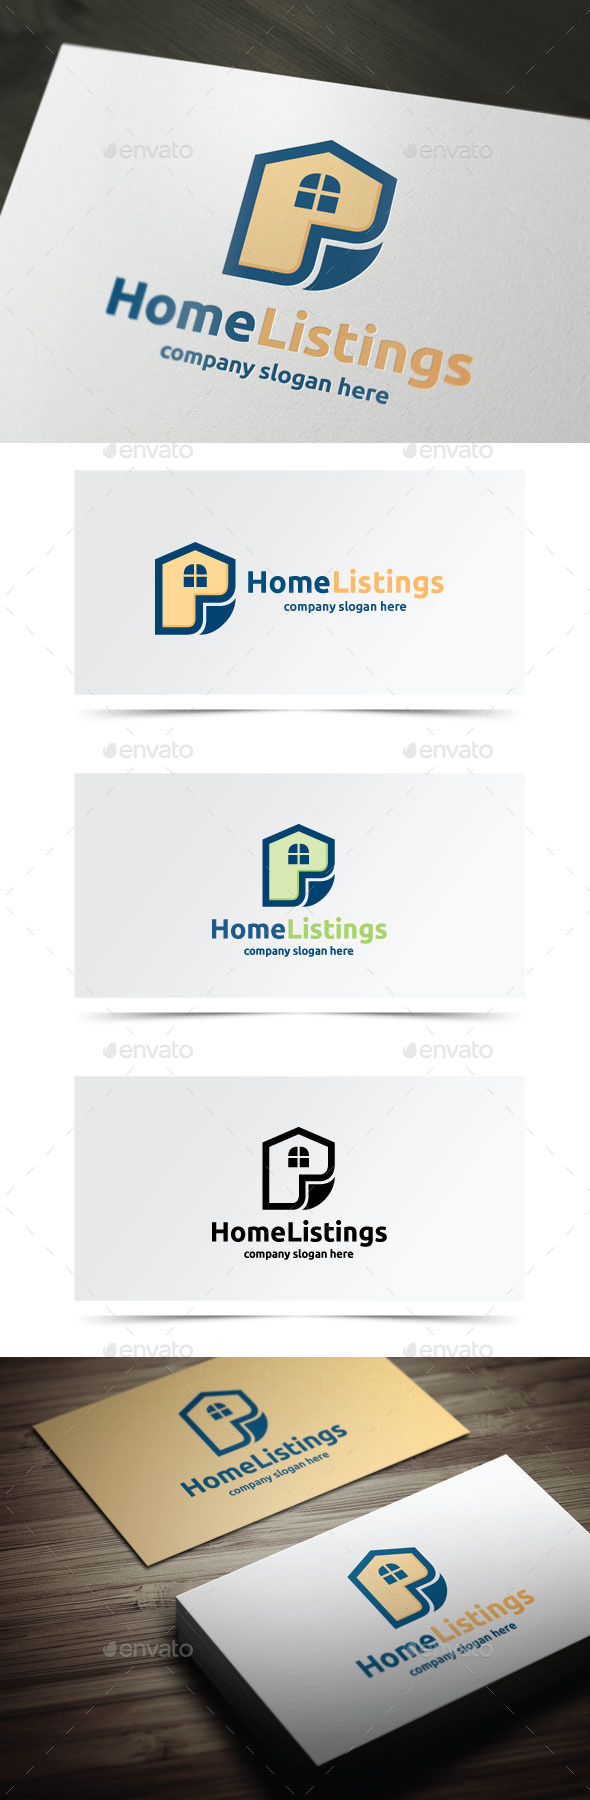 GraphicRiver Home Lisings 9941585